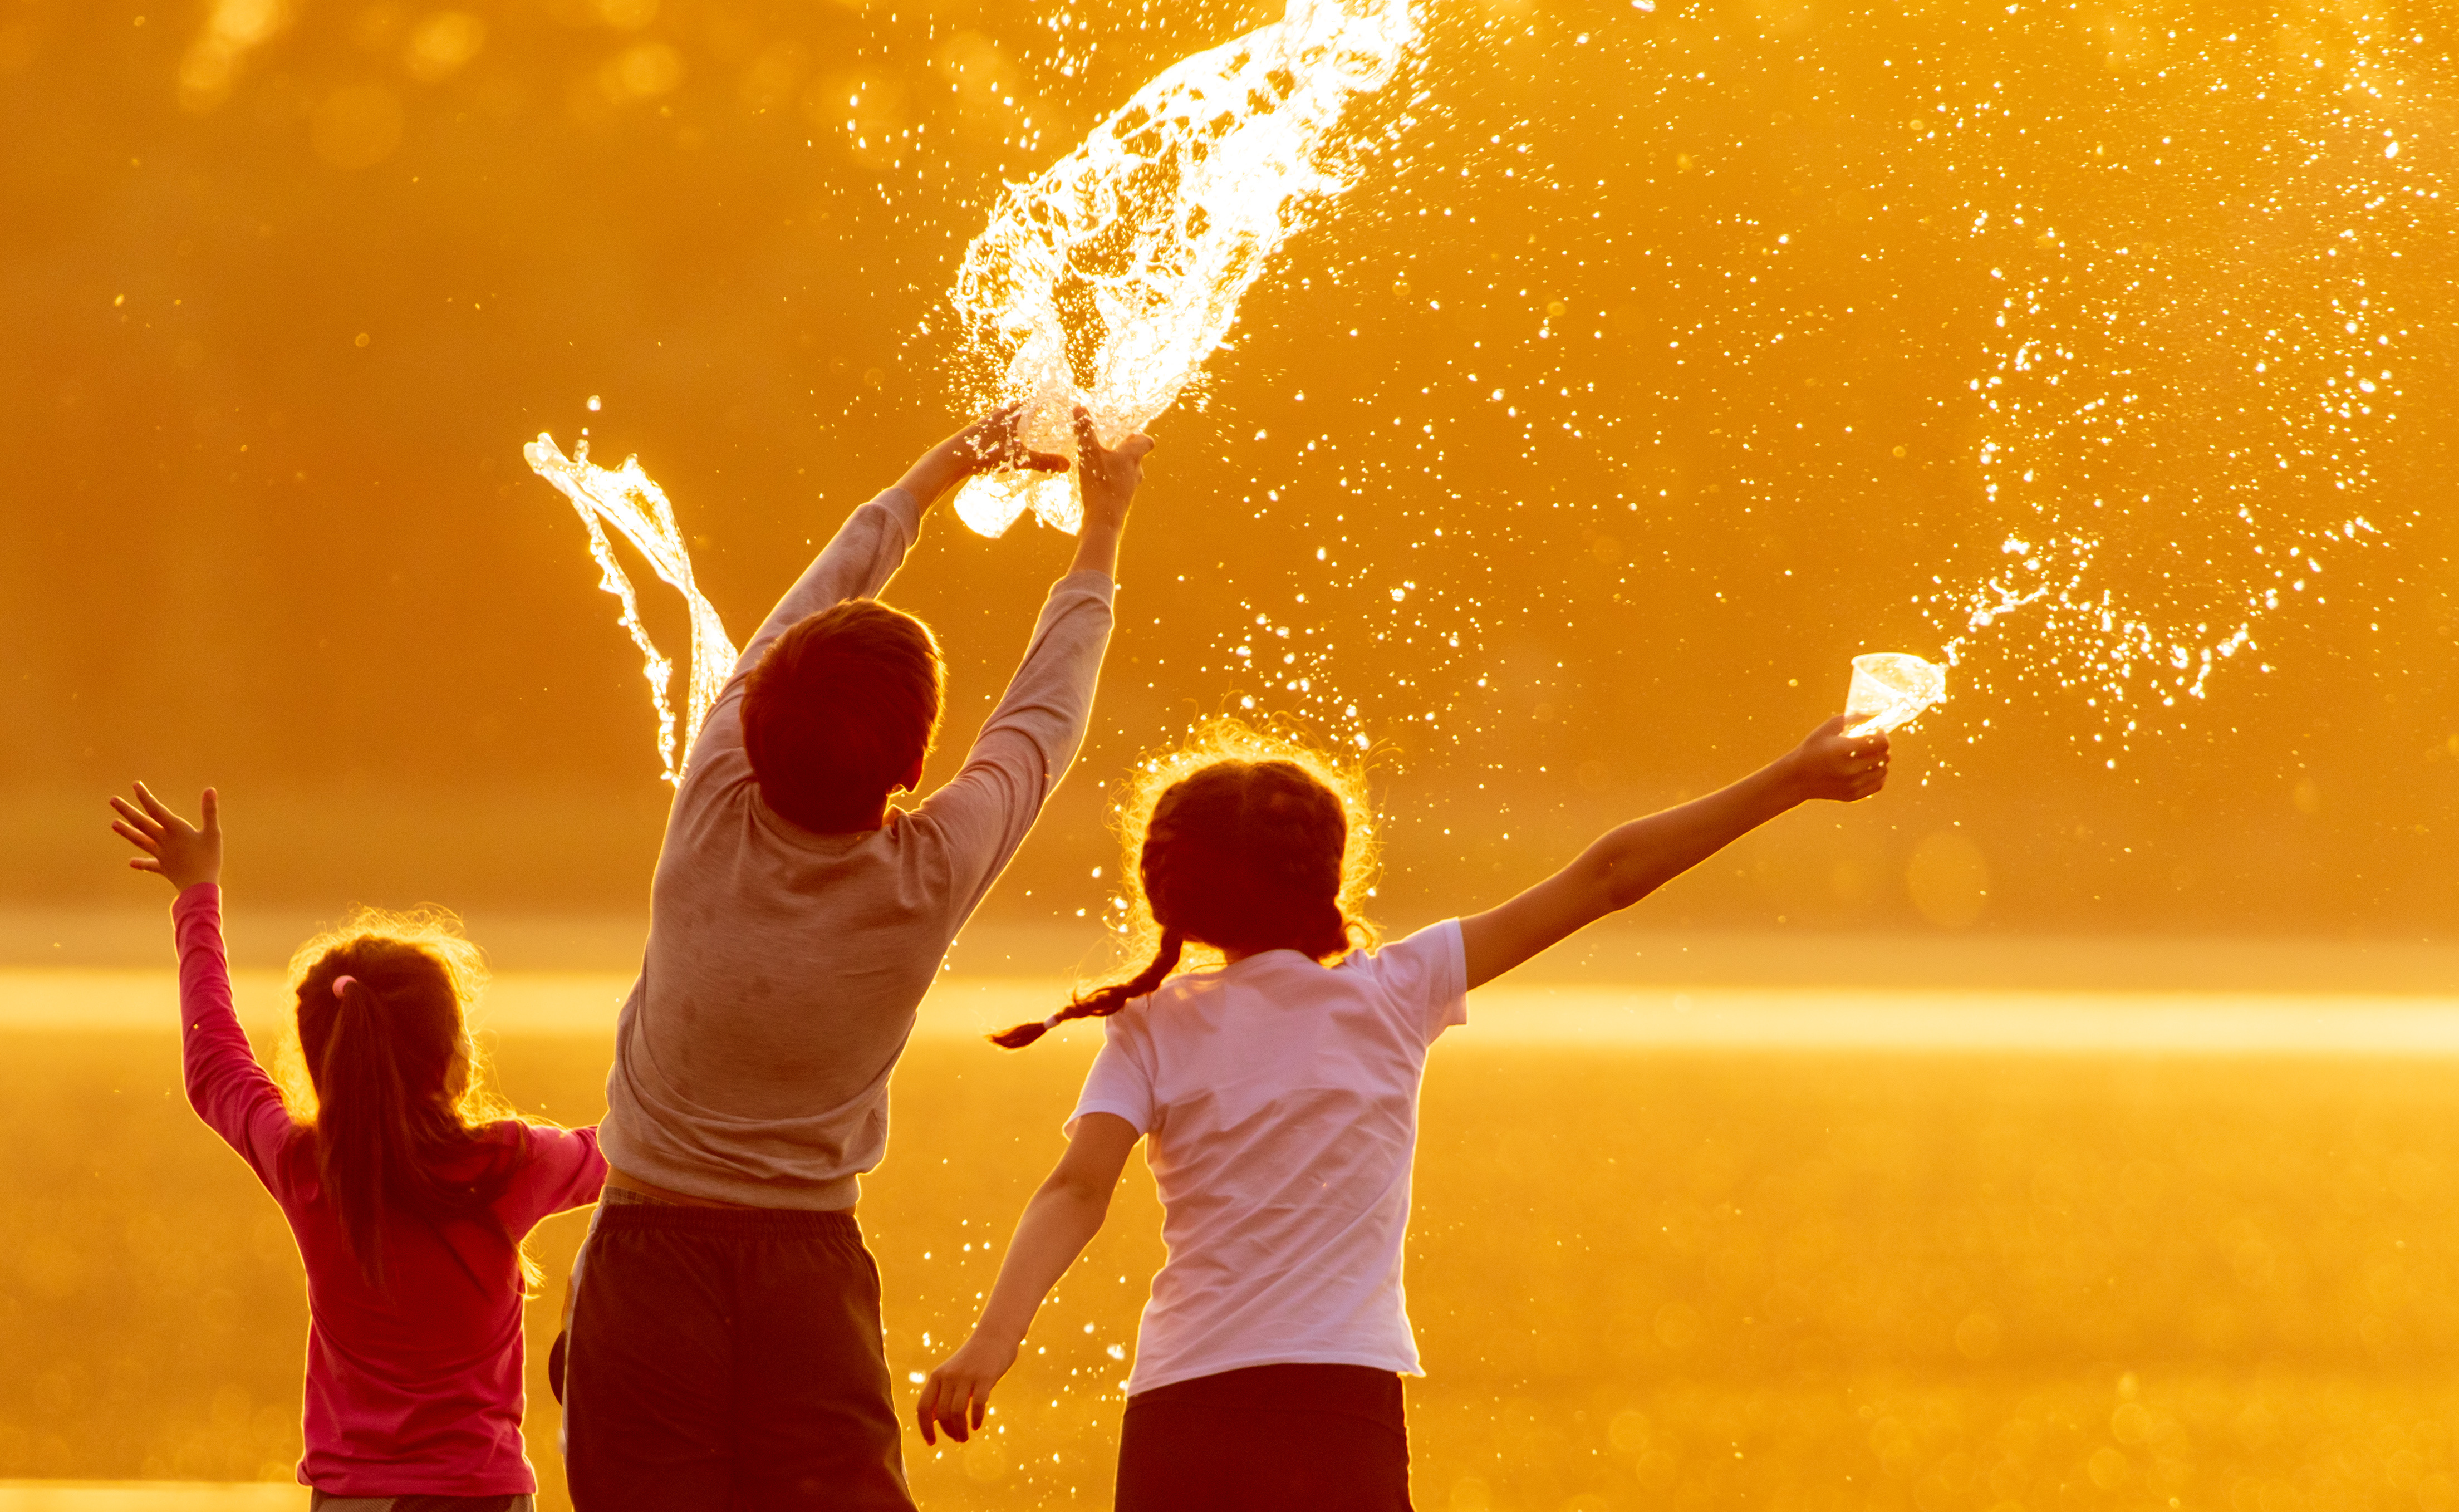 kids throw water while playing outside